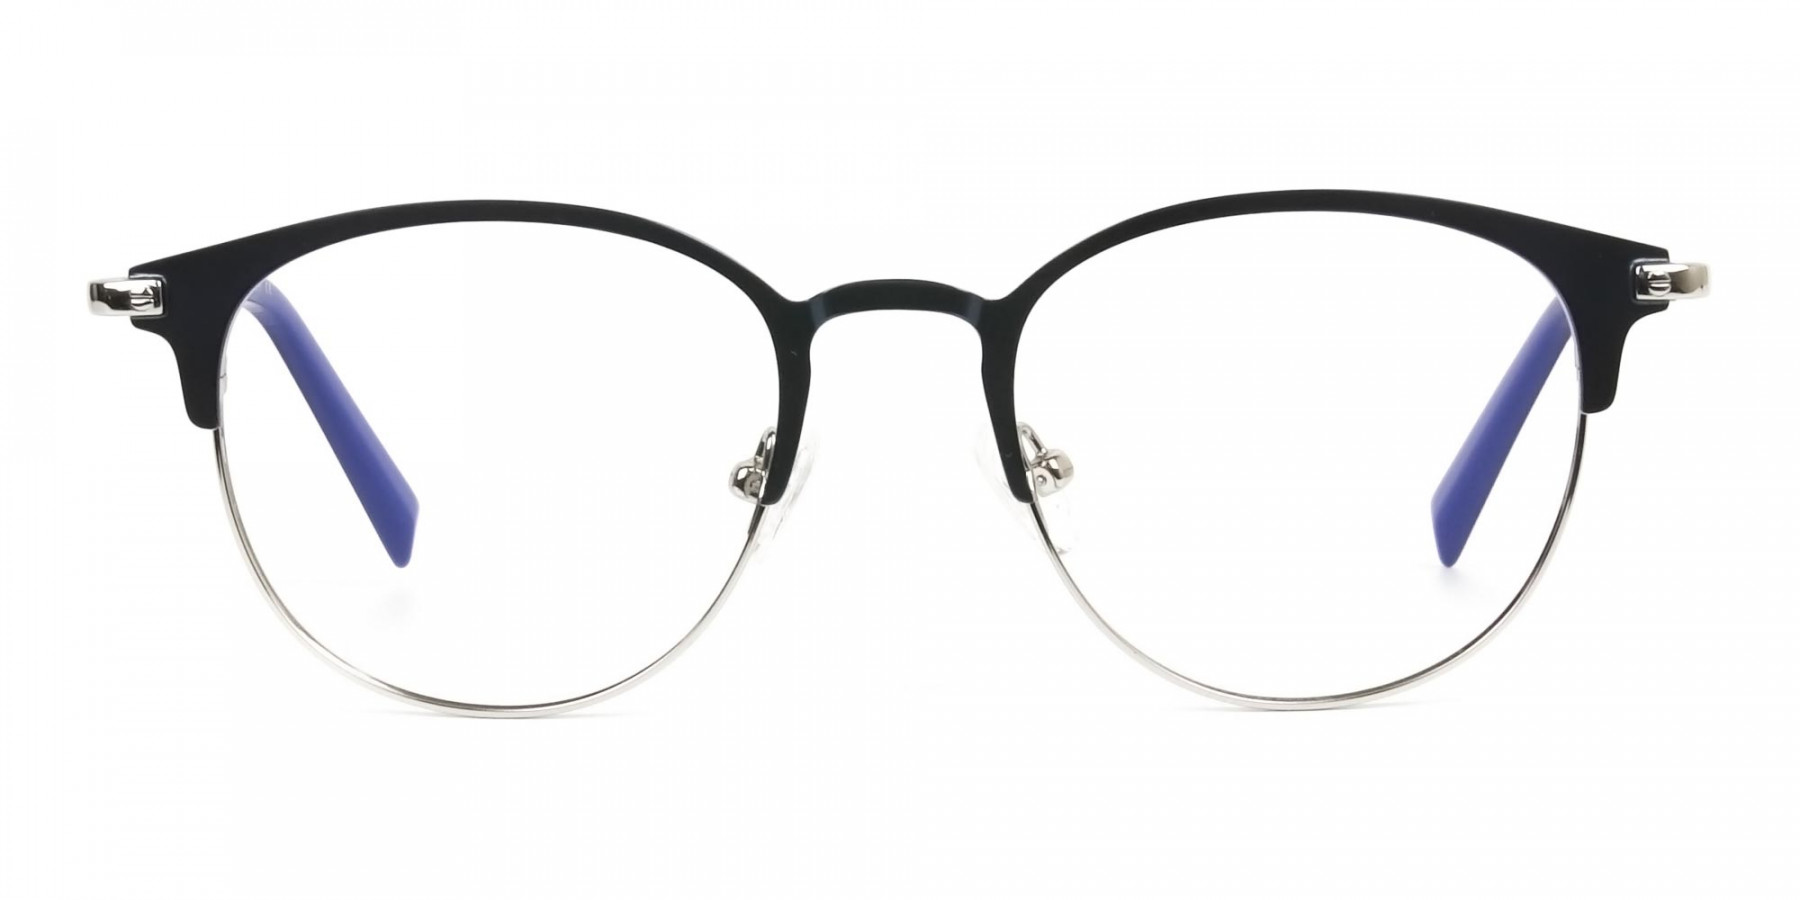 Keyhole Silver Navy Blue Browline Glasses in Round - 1